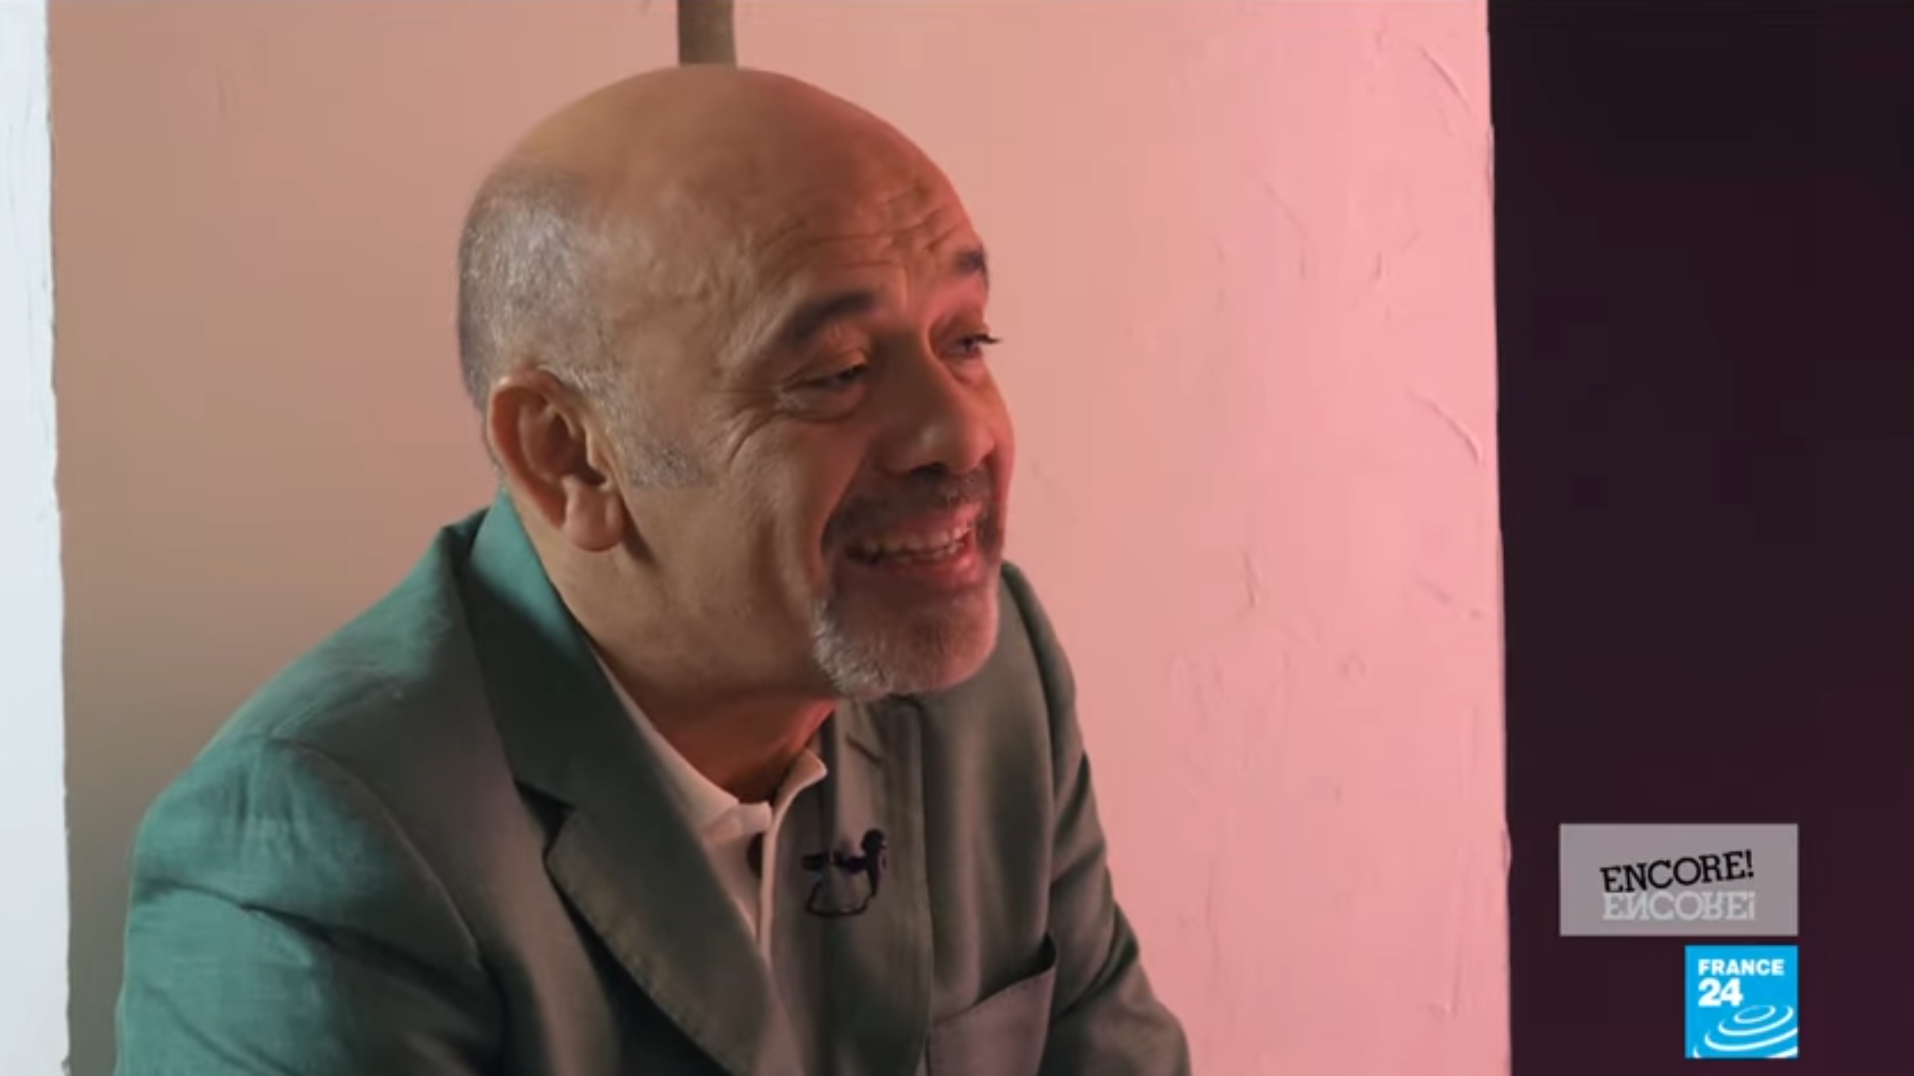 Christian Louboutin talks shoes and art with FRANCE 24's Encore programme, March 19 2020.